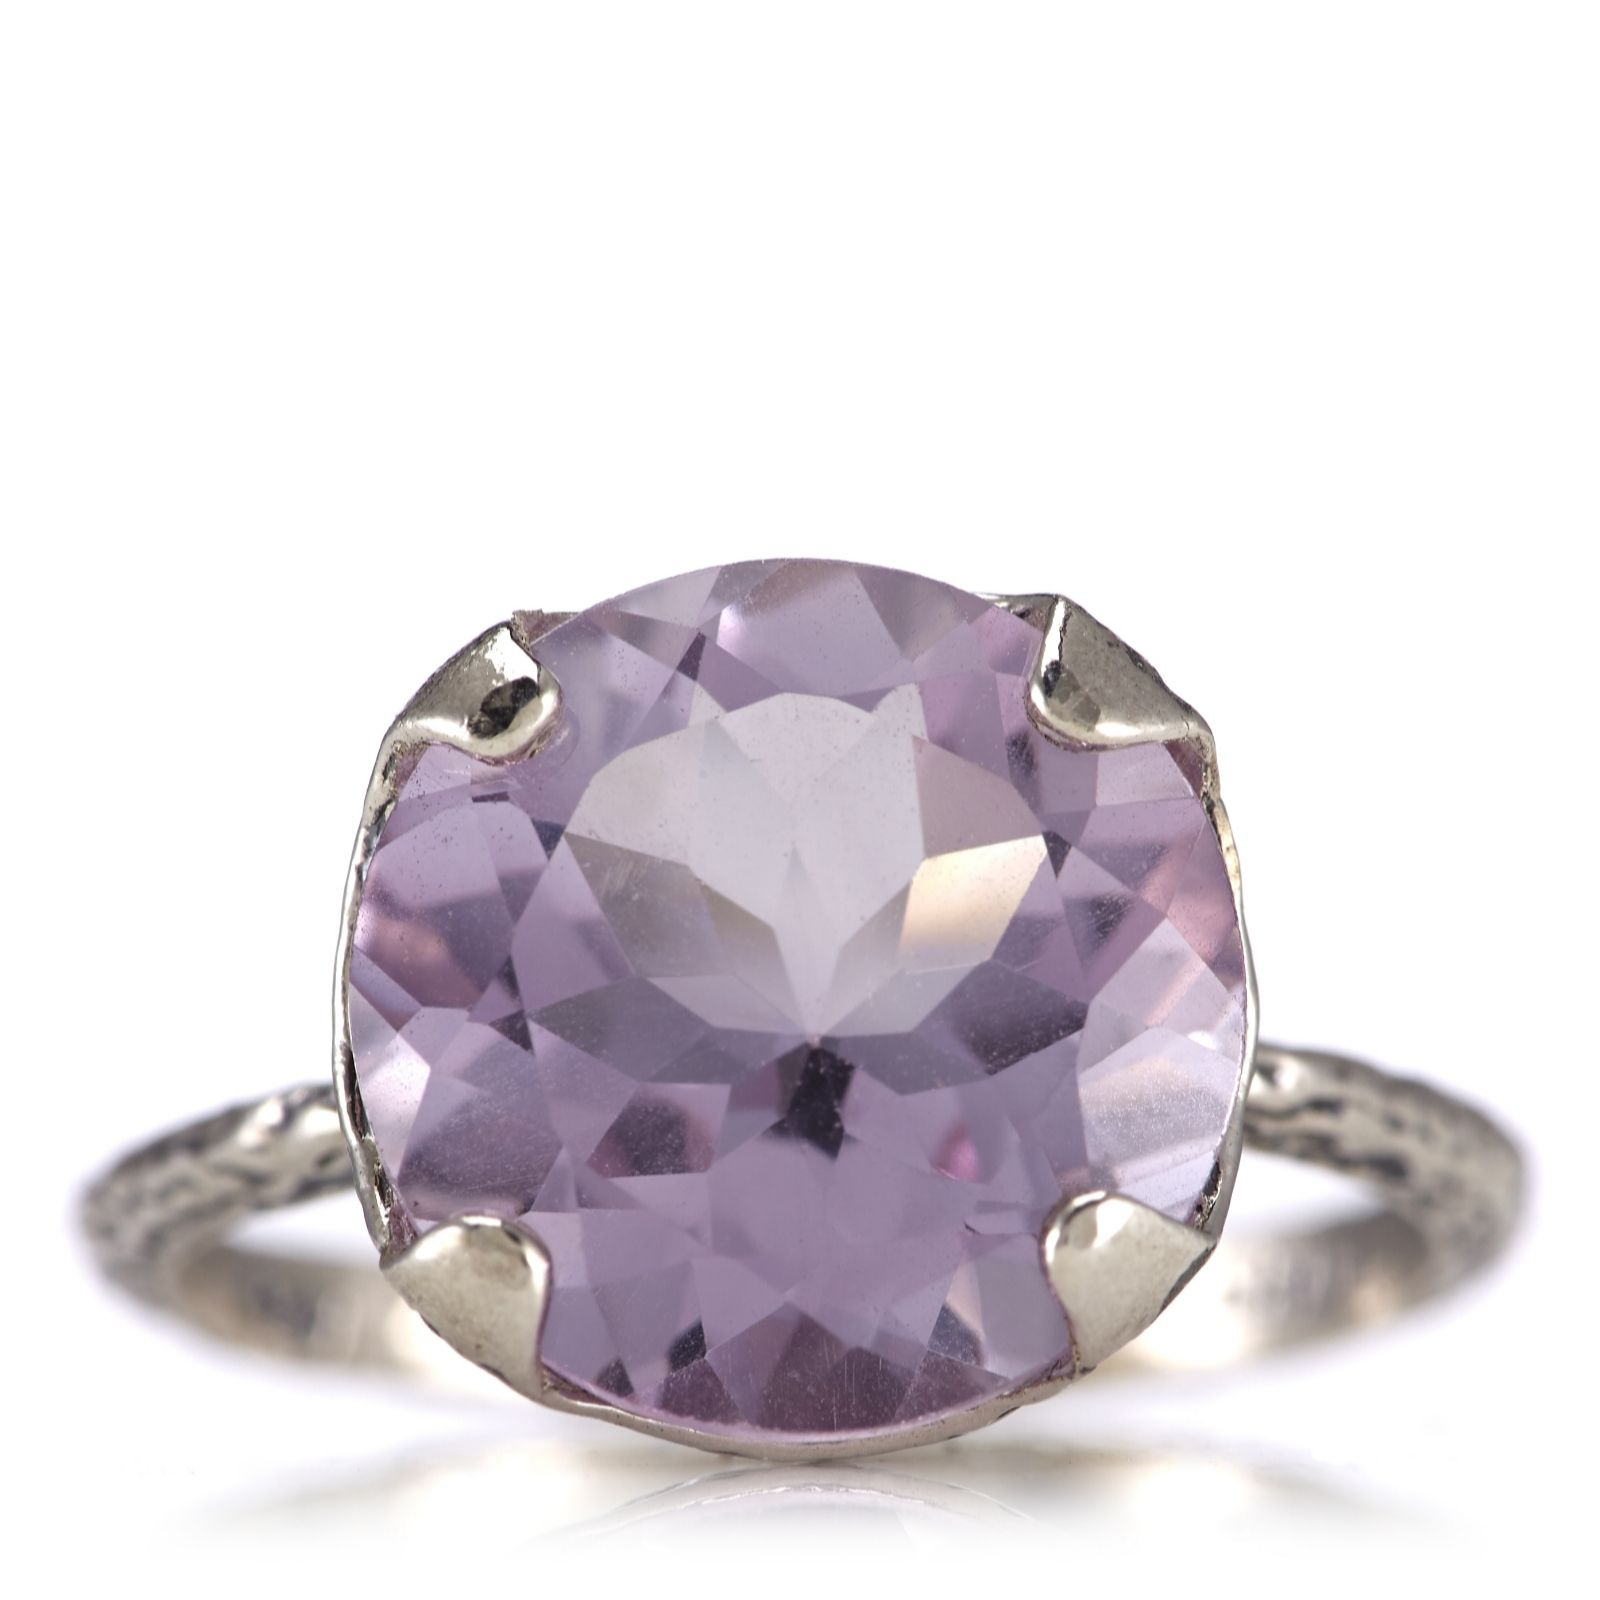 Or Paz 5.7ct Amethyst Solitaire Ring Sterling Silver